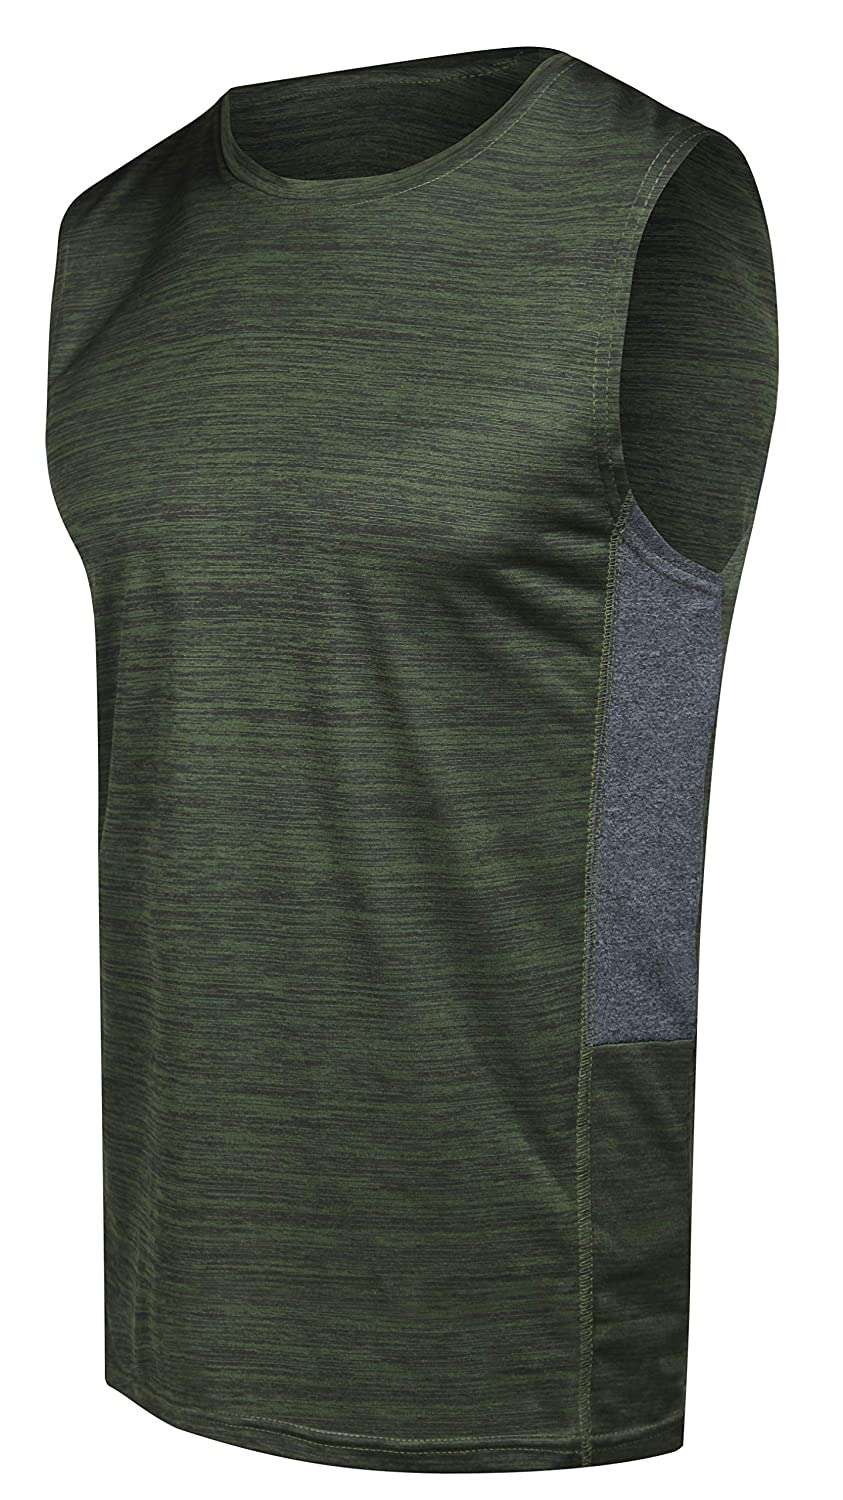 Mens Dry-Fit Active Athletic Tech Tank Top Workout /& Training Activewear 5 Pack